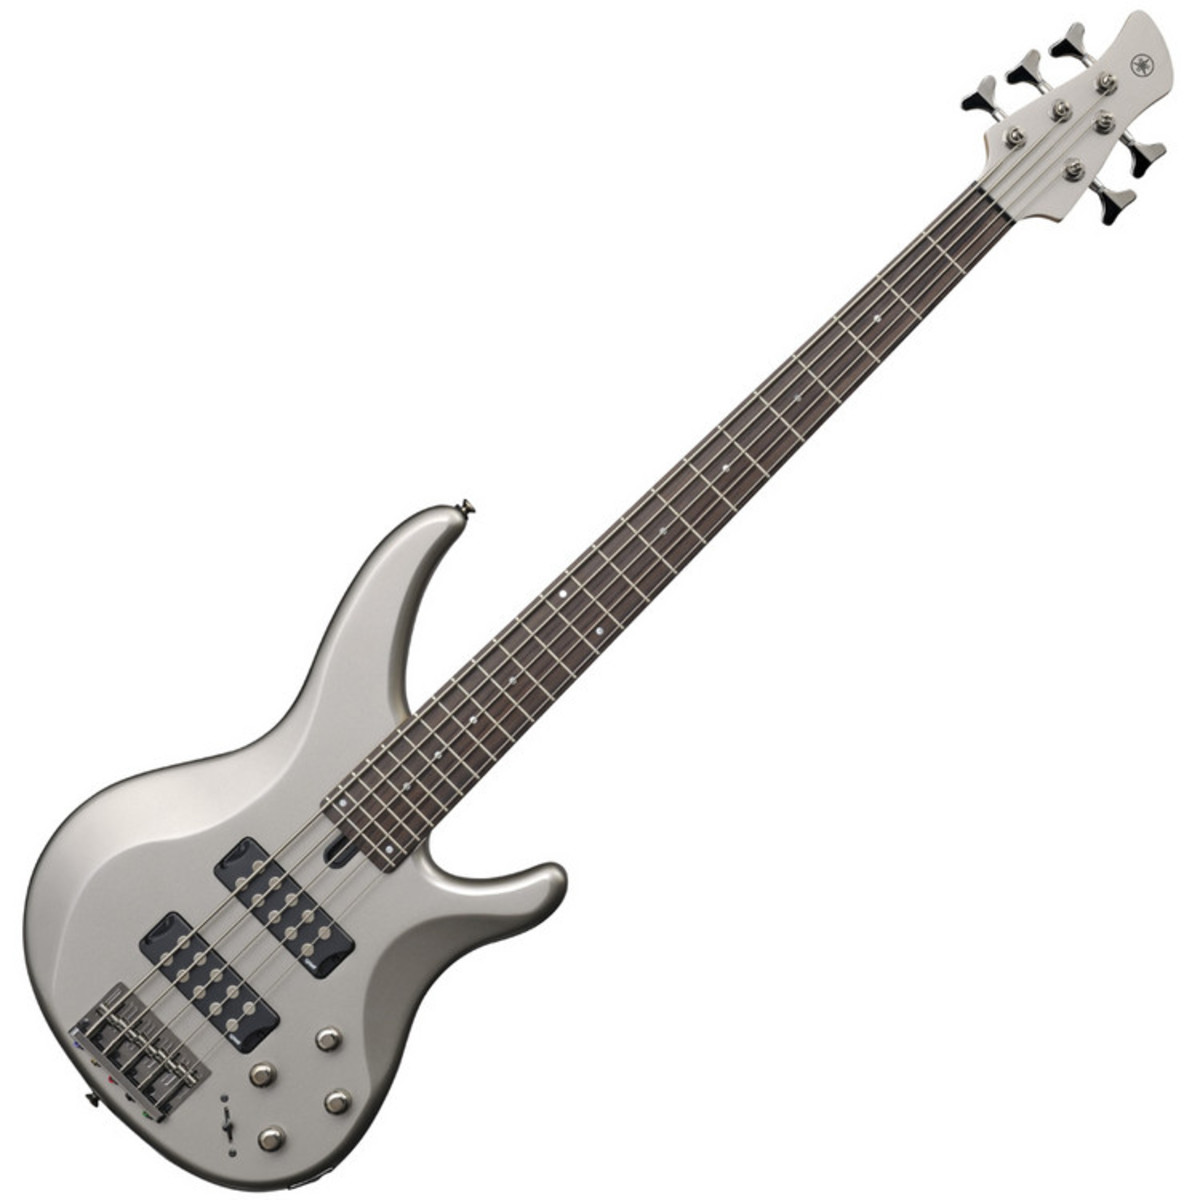 yamaha trbx305 5 string bass guitar pewter at